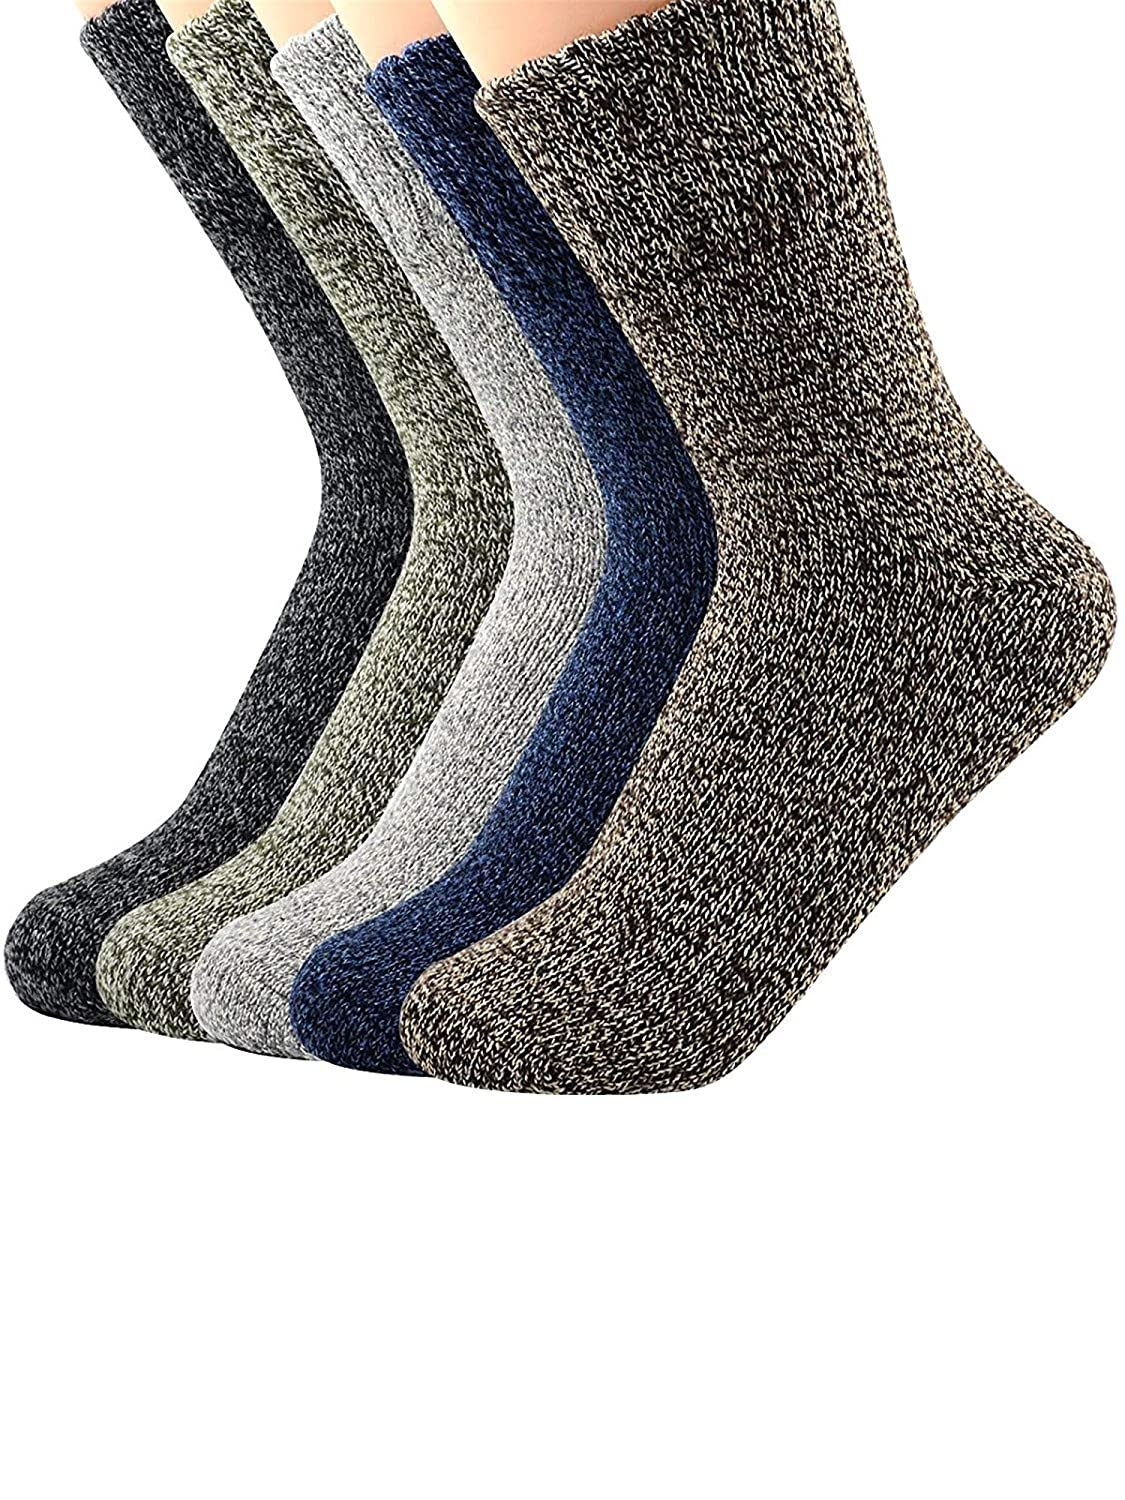 Winter Boot Socks For Women Warm Fun Crew Cozy Comfy Wool Bombas Socks Urban Virgin MNUCAUVCFTA9207